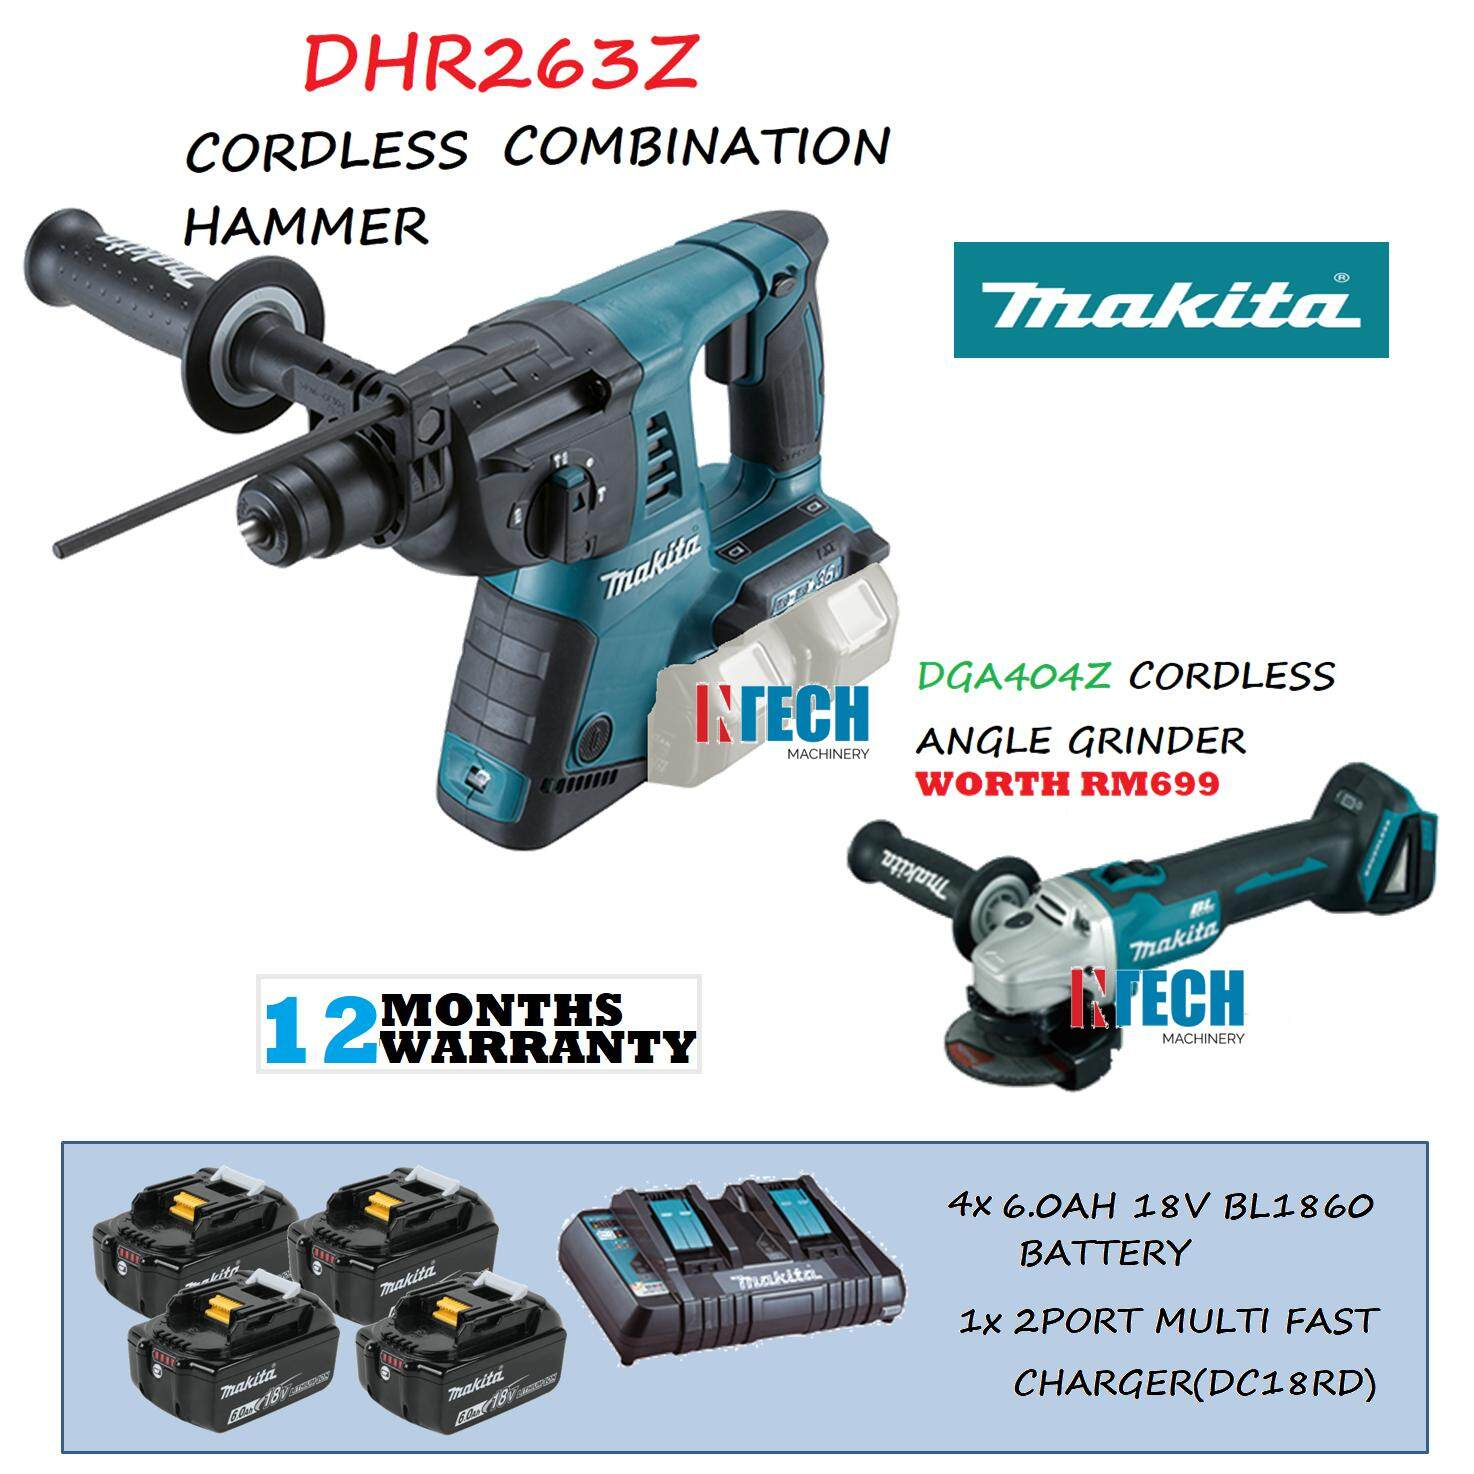 MAKITA DHR263Z CORDLESS COMBINATION HAMMER C/W 4x6.0AH BATTERY(BL1860B)+1x 2PORT MULTI FAST CHARGER(DC18RD)+DGA404Z CORDLESS GRINDER